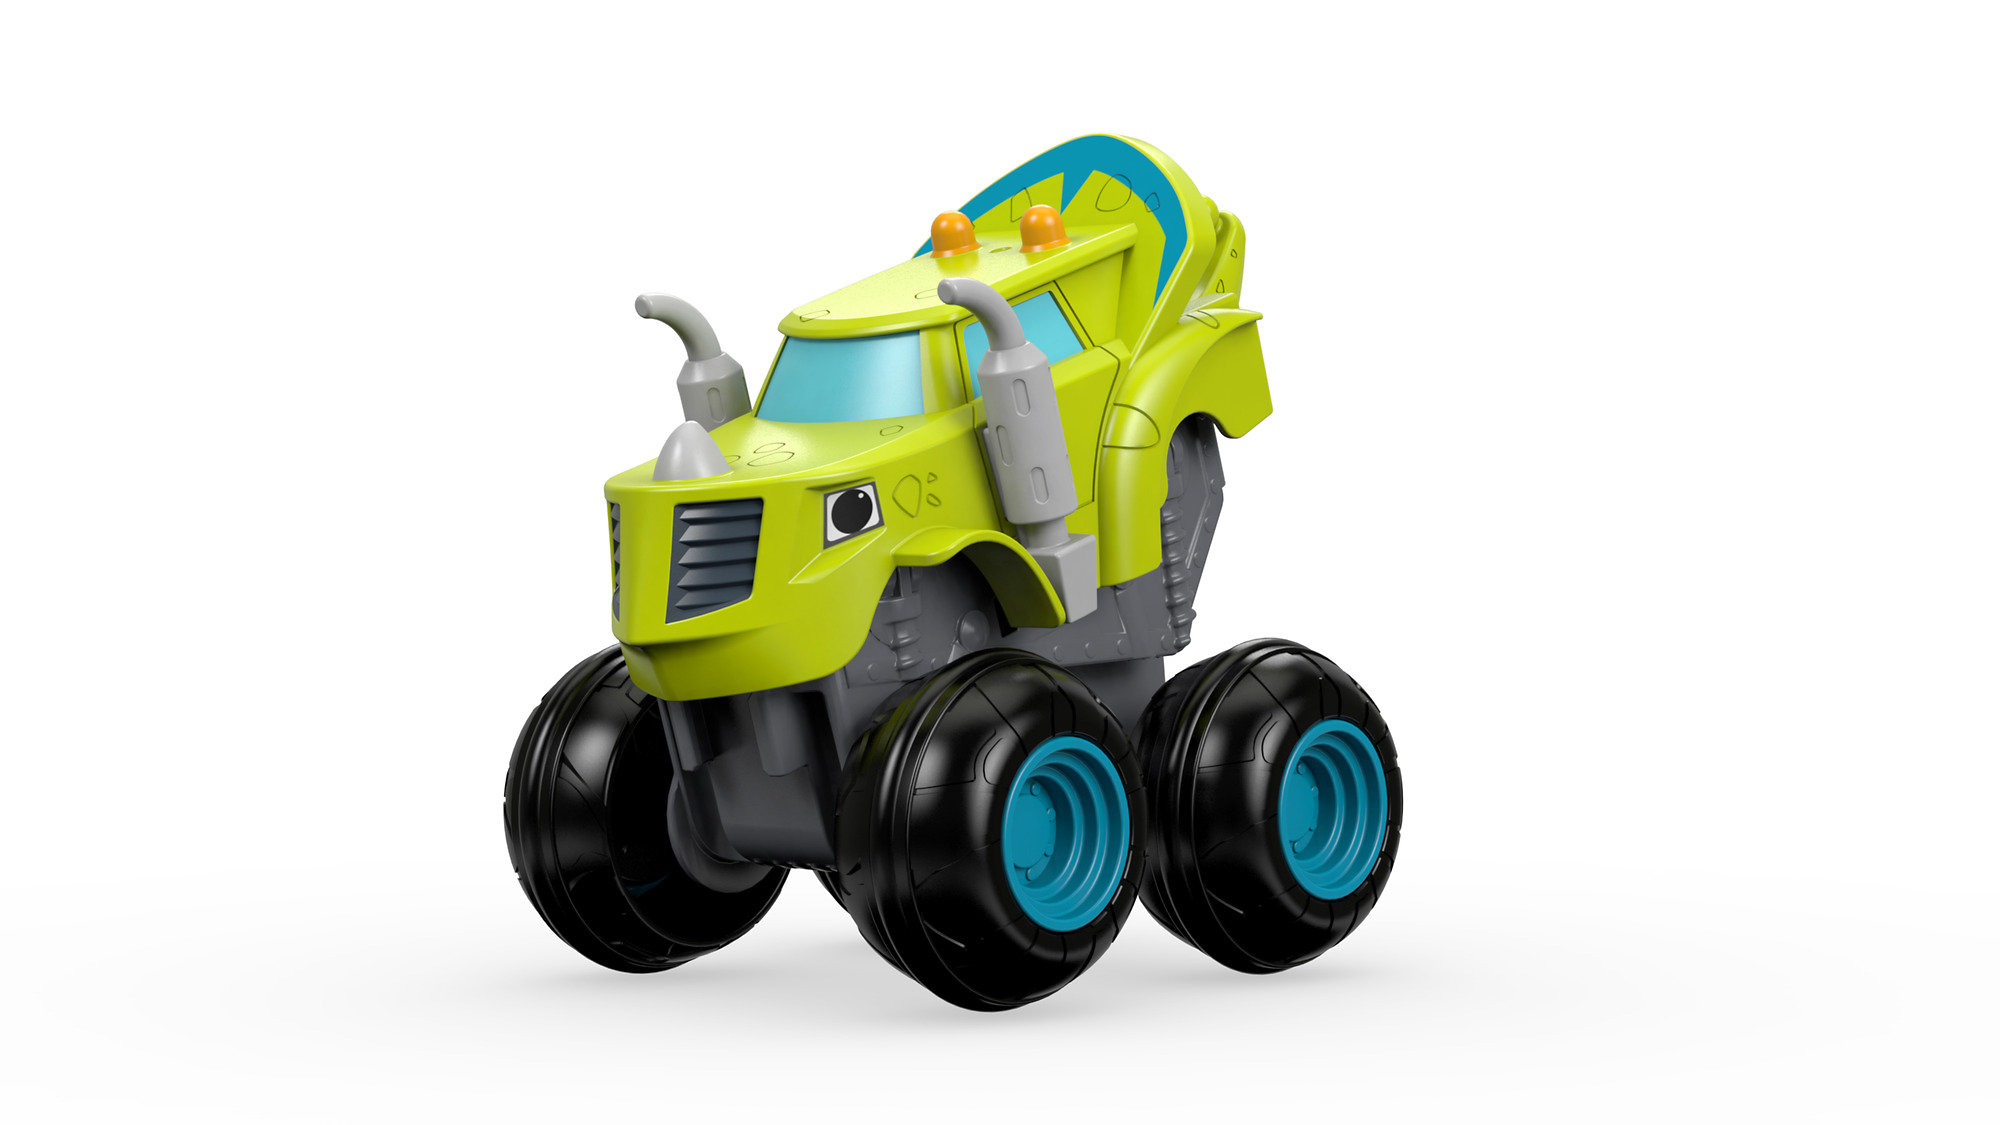 Fisher Price Nickelodeon Blaze And The Monster Machines Slam & Go Zeg by Mattel